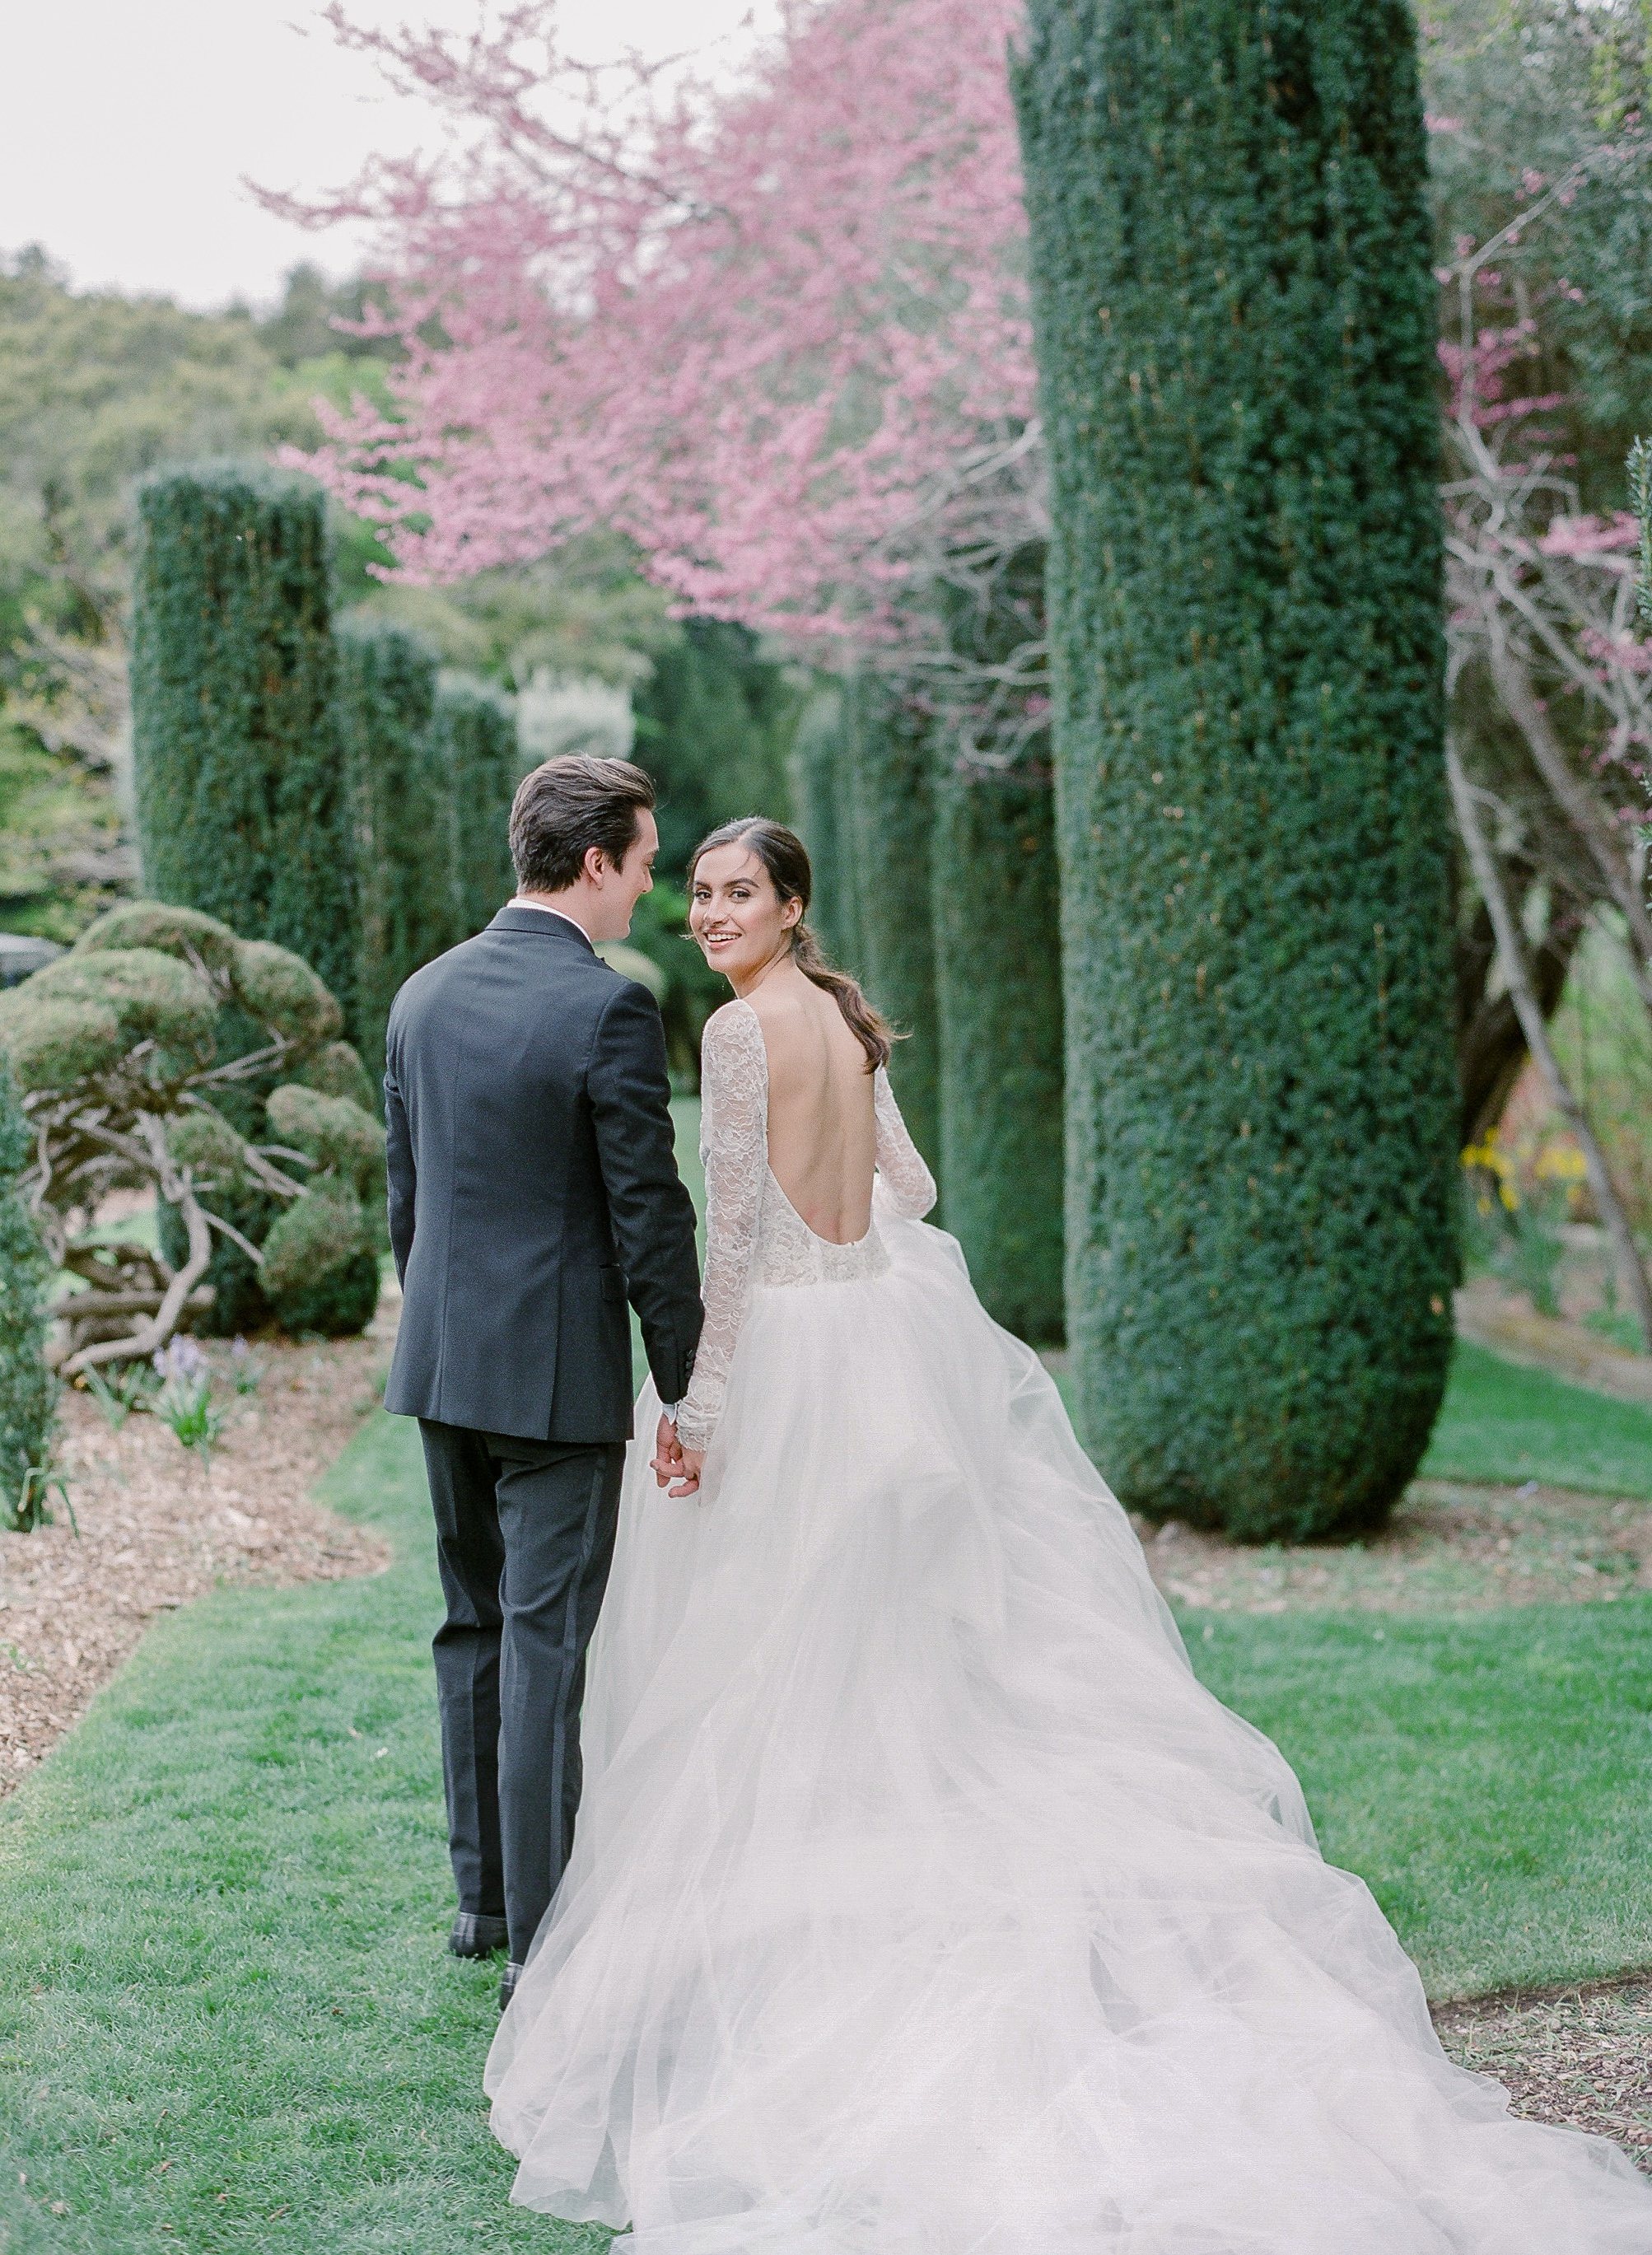 Filoli | Filoli Garden | Wedding | Amanda Crean Photography | Bustle Events | wedding